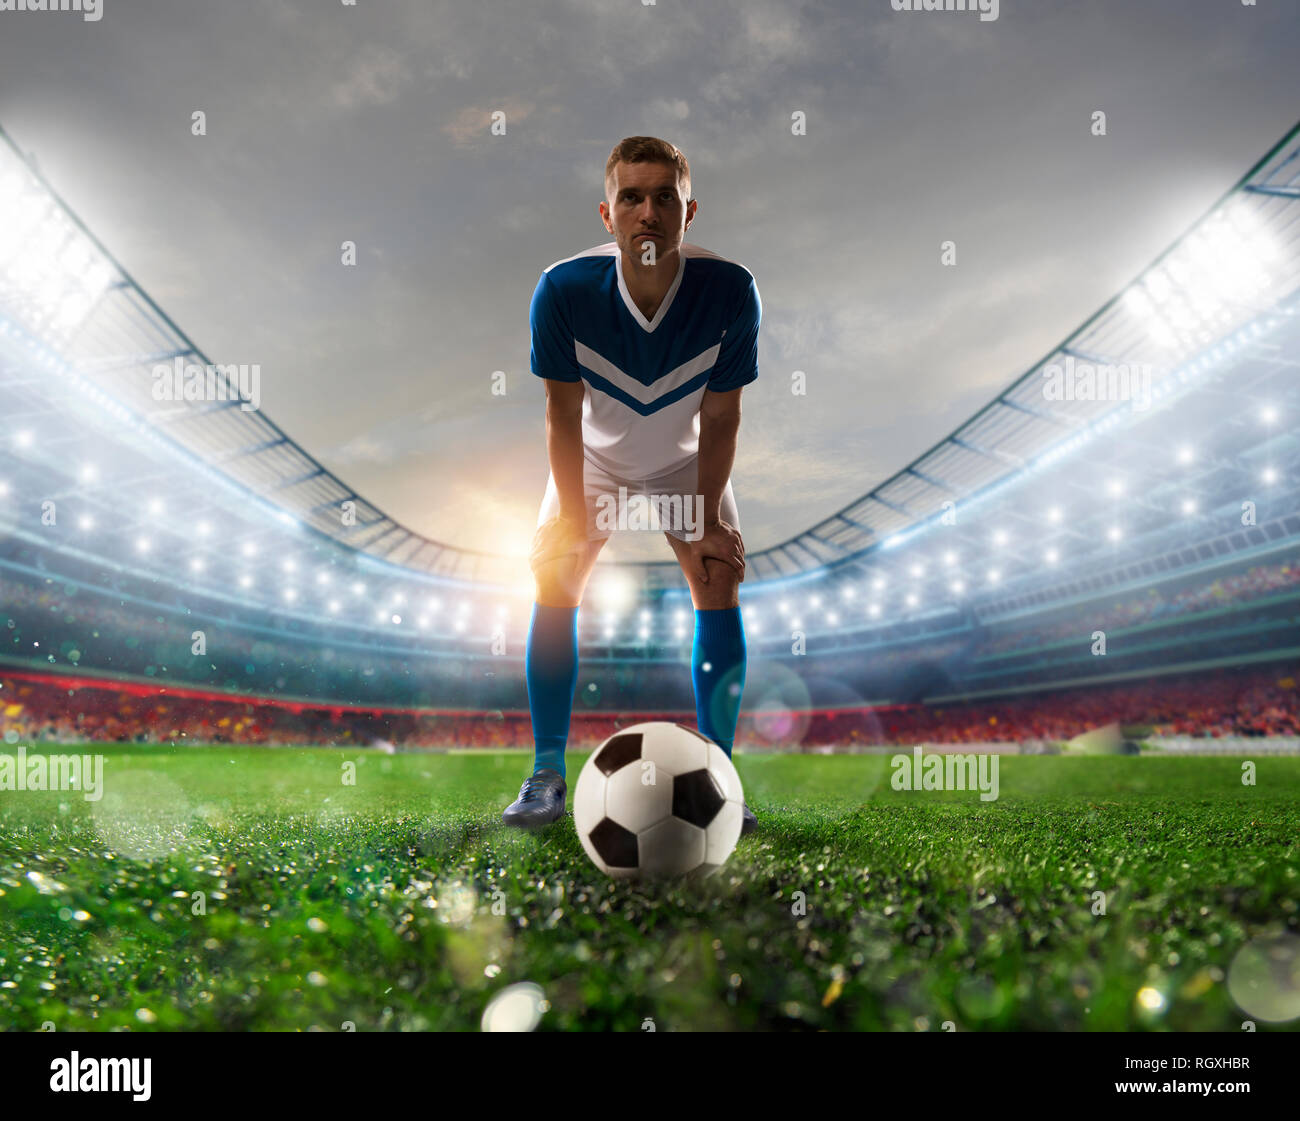 Soccer player ready to kick the soccerball at the stadium during the match - Stock Image